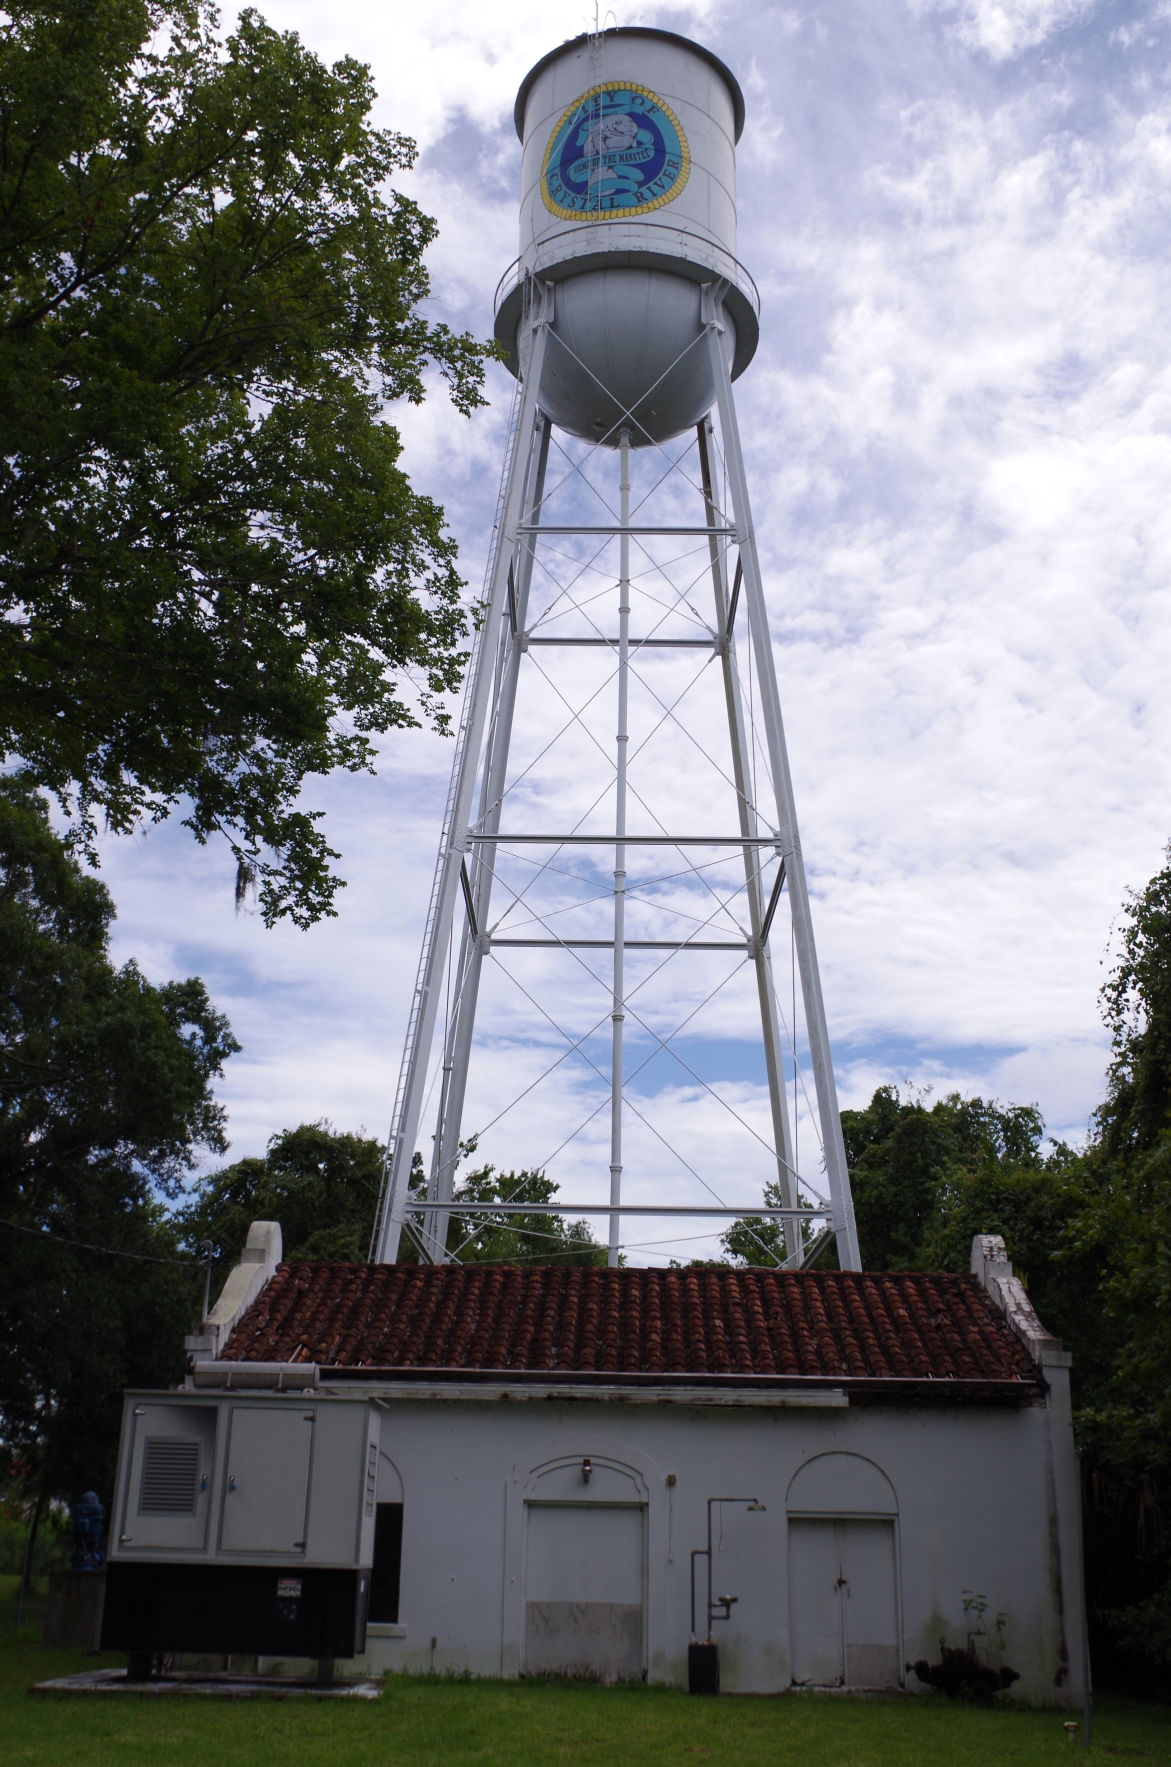 Crystal River Pump House / Water Tower